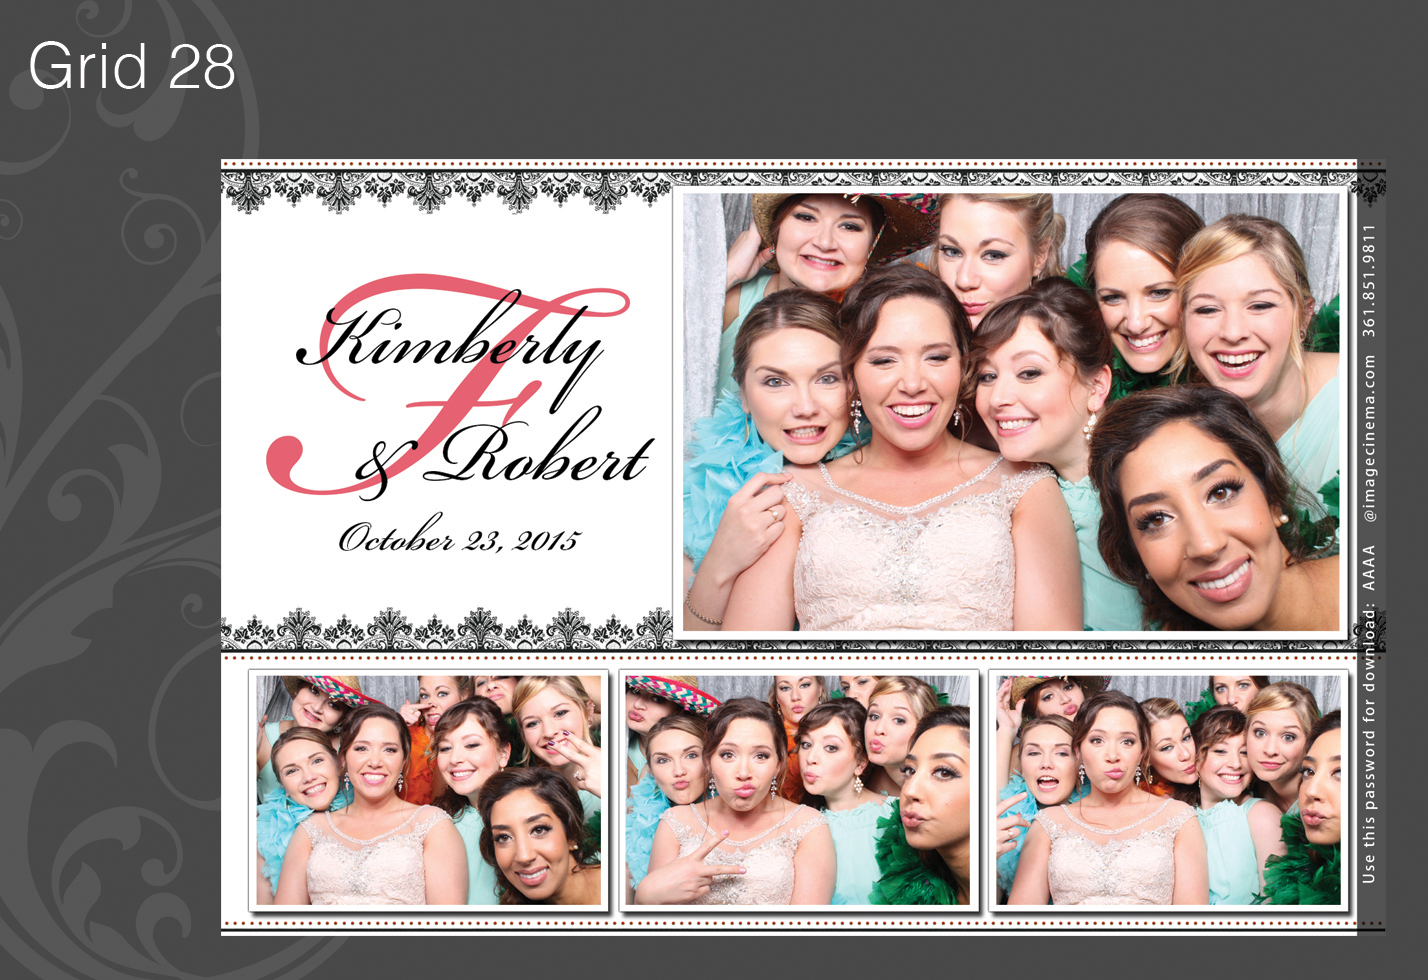 Photo Booth Grid 28